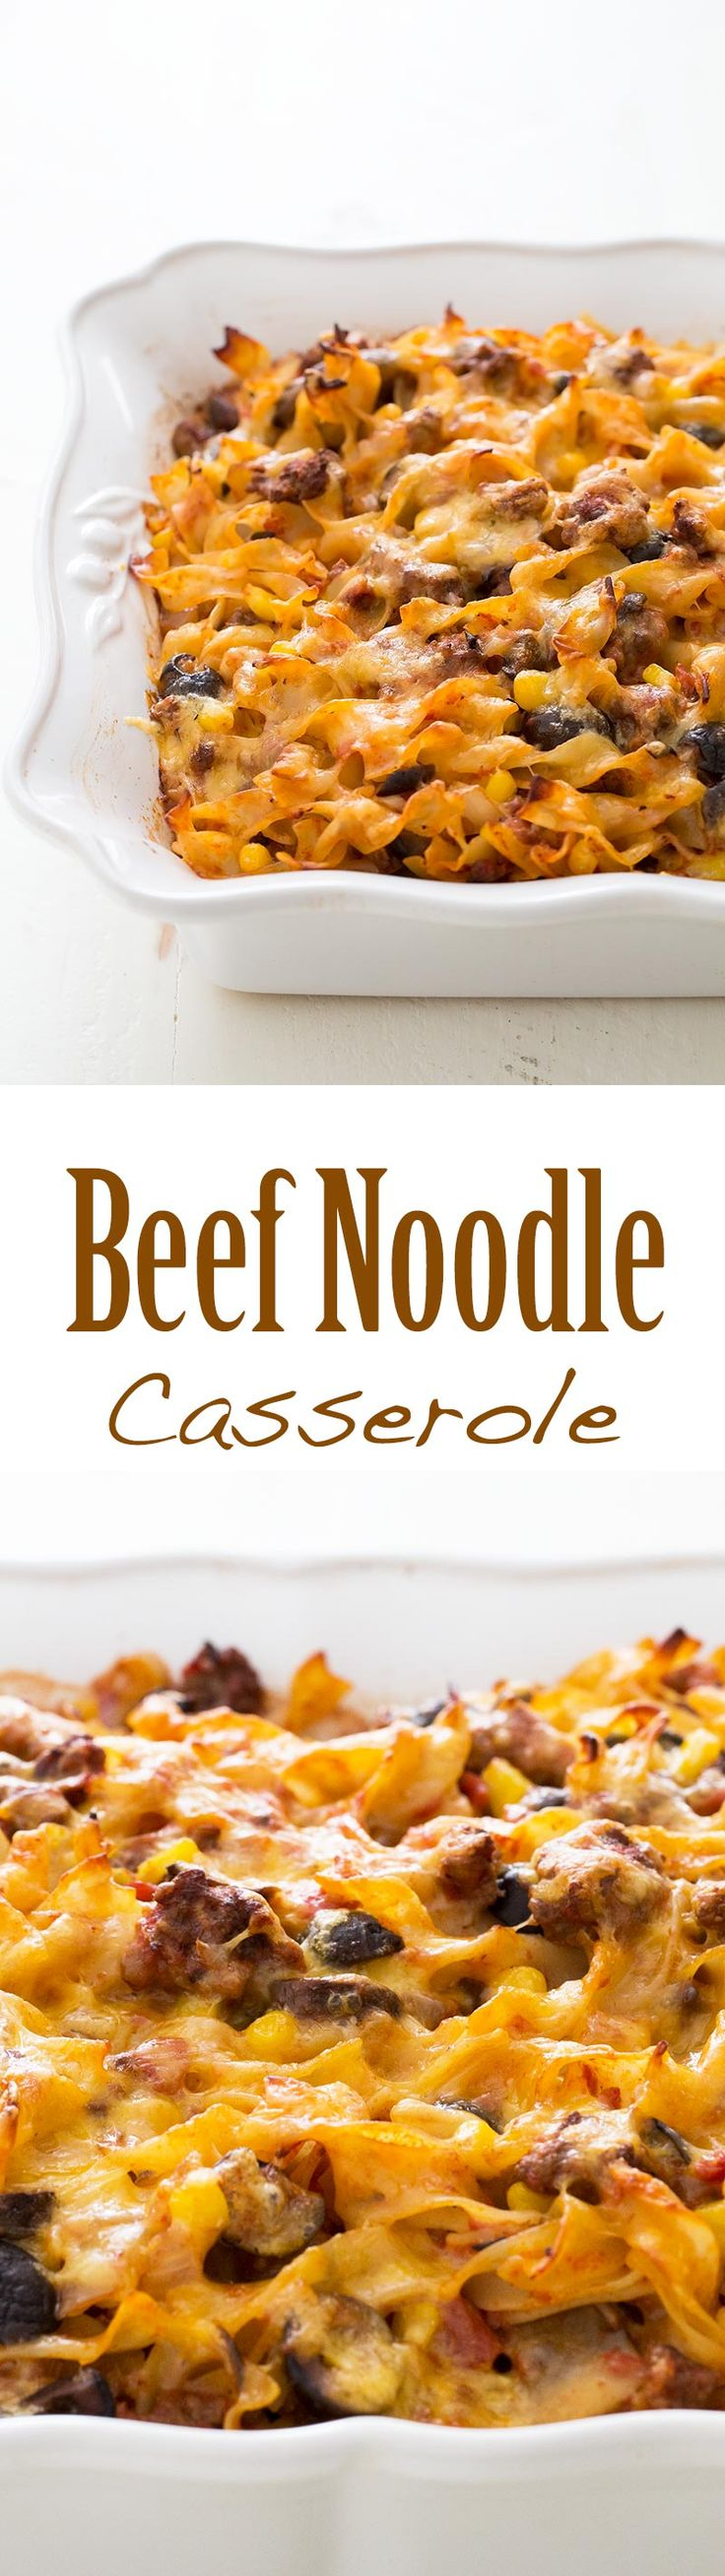 BEST Beef Noodle Casserole EVER! Our favorite recipe from my grandmother is this ground beef and egg noodle casserole with you won't believe all the other wonderful ingredients.